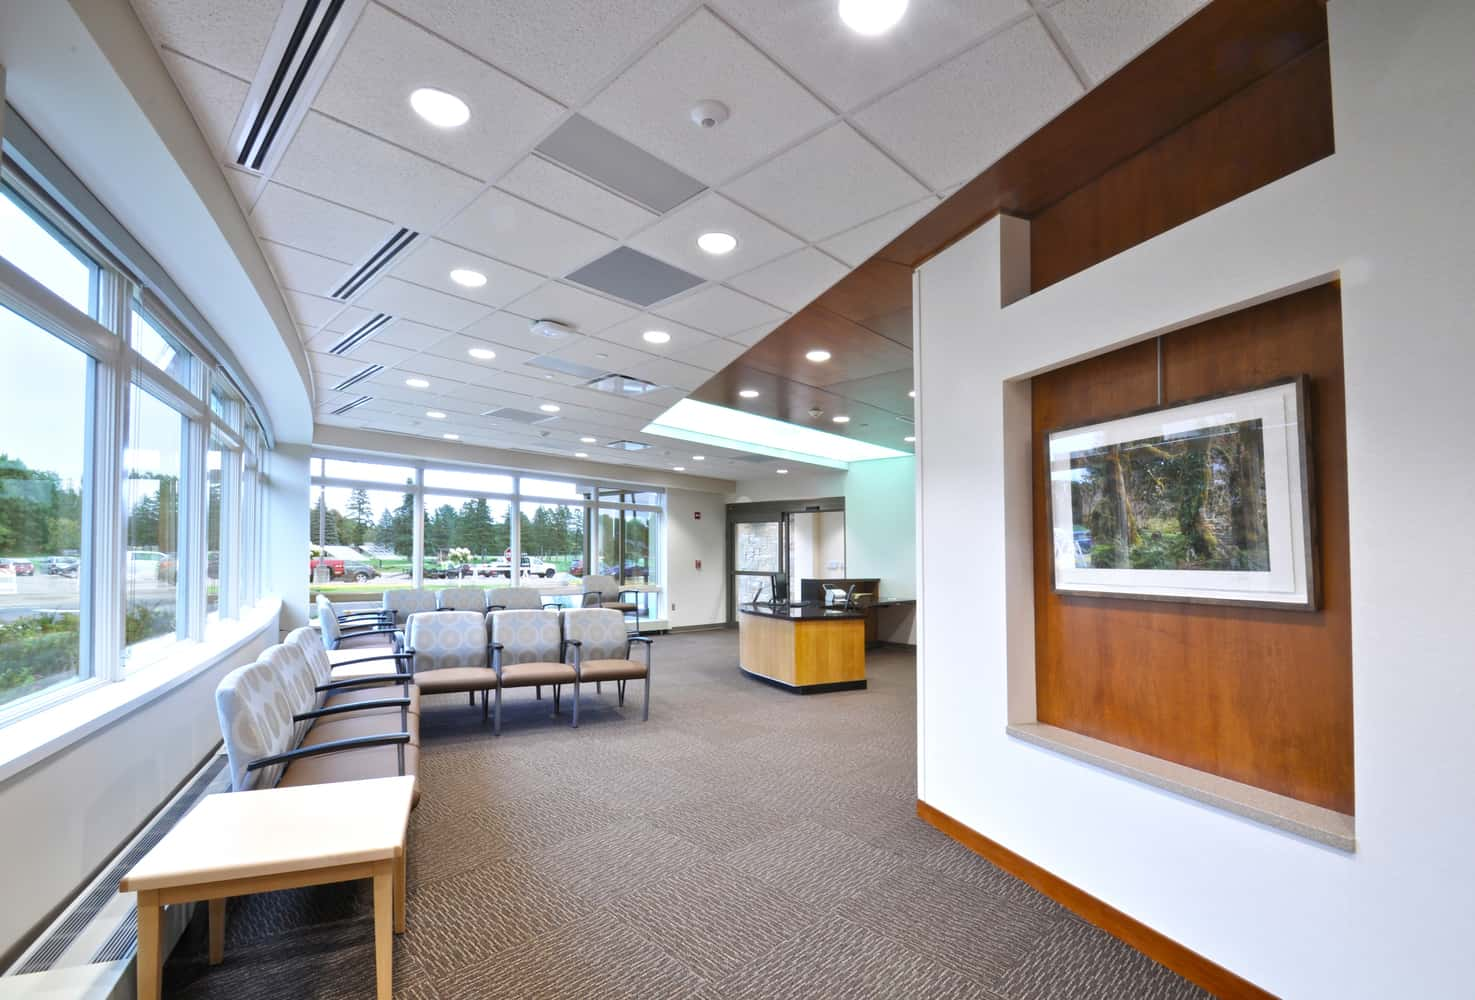 Westfields Hospital Campus Remodeling and Expansion - Emergency Department